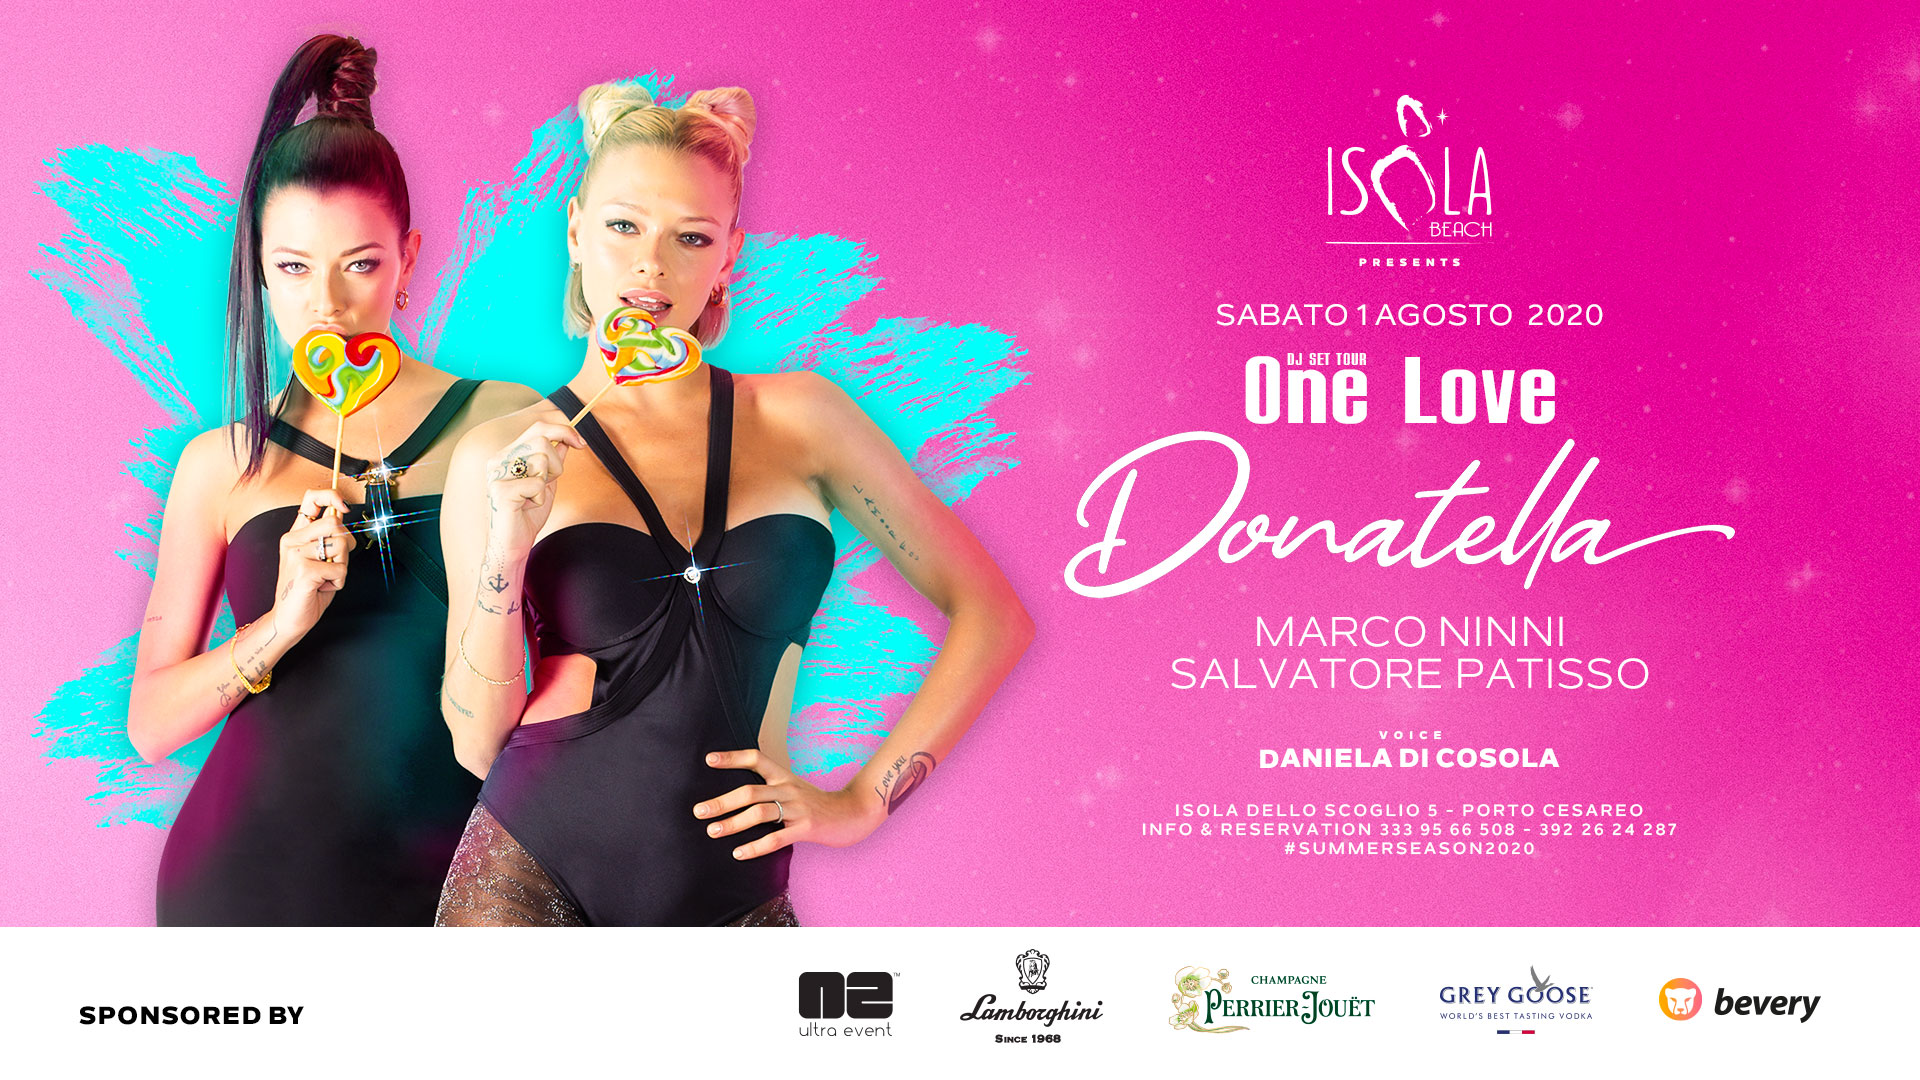 LE DONATELLA & ONE LOVE | 01.08.20